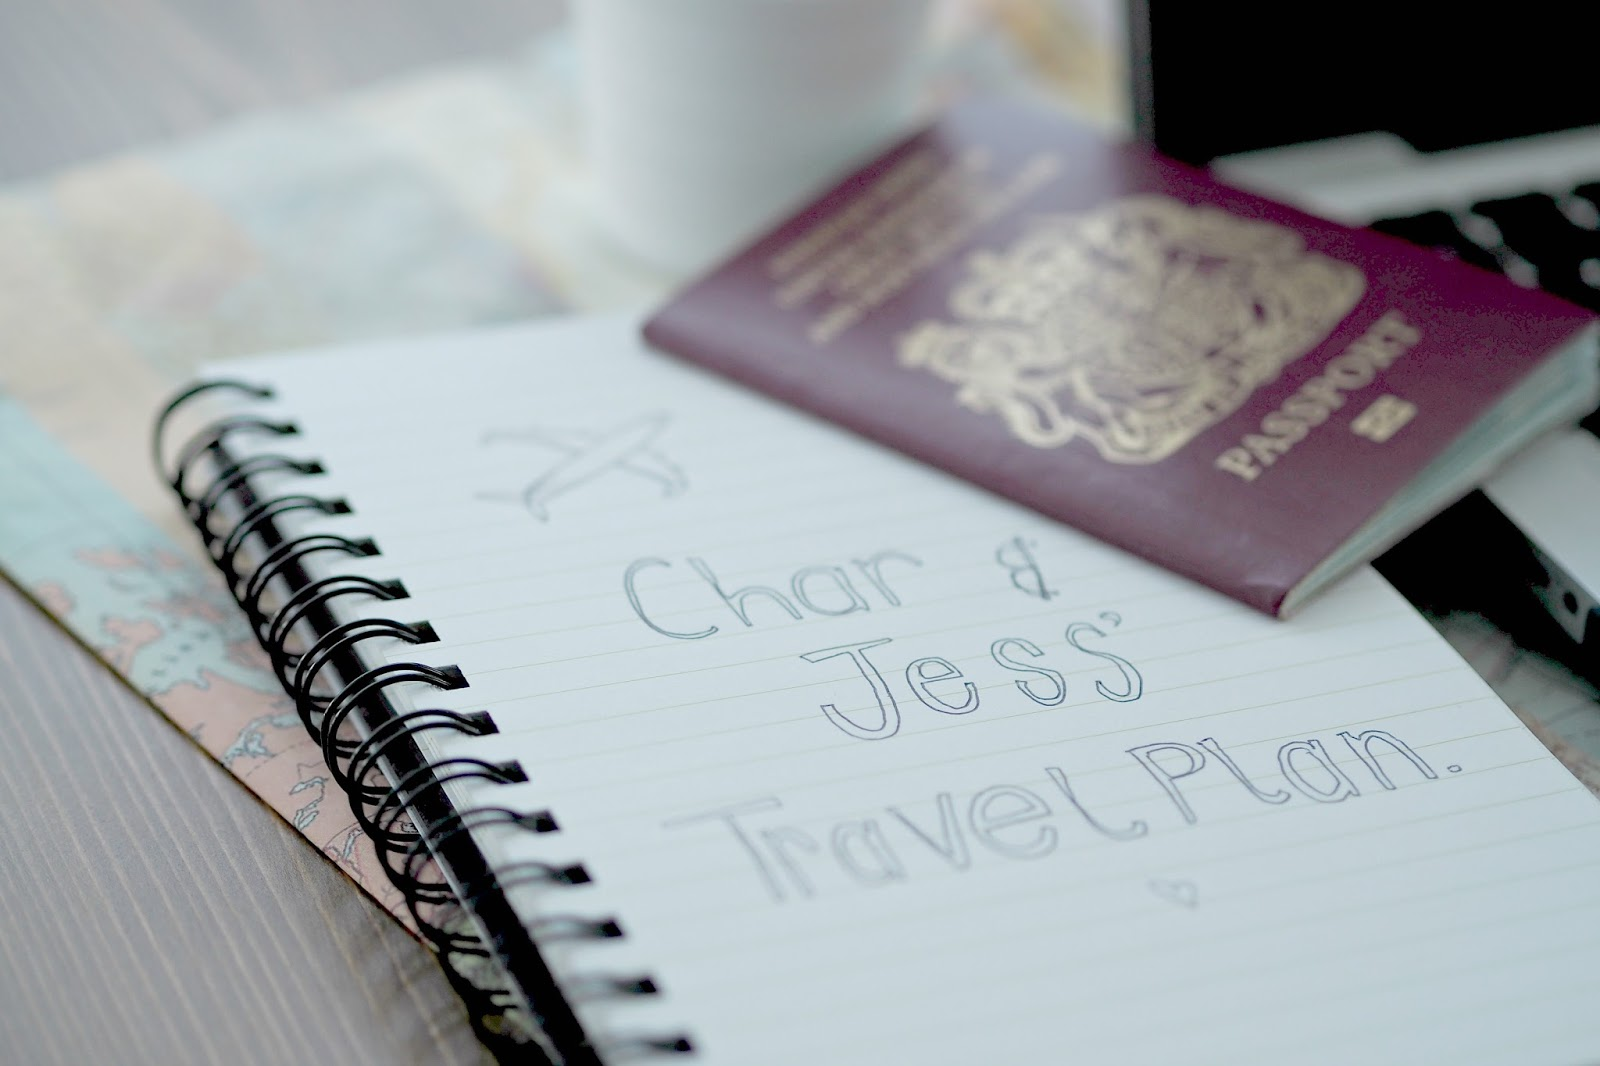 planning an adventure, gap year travels